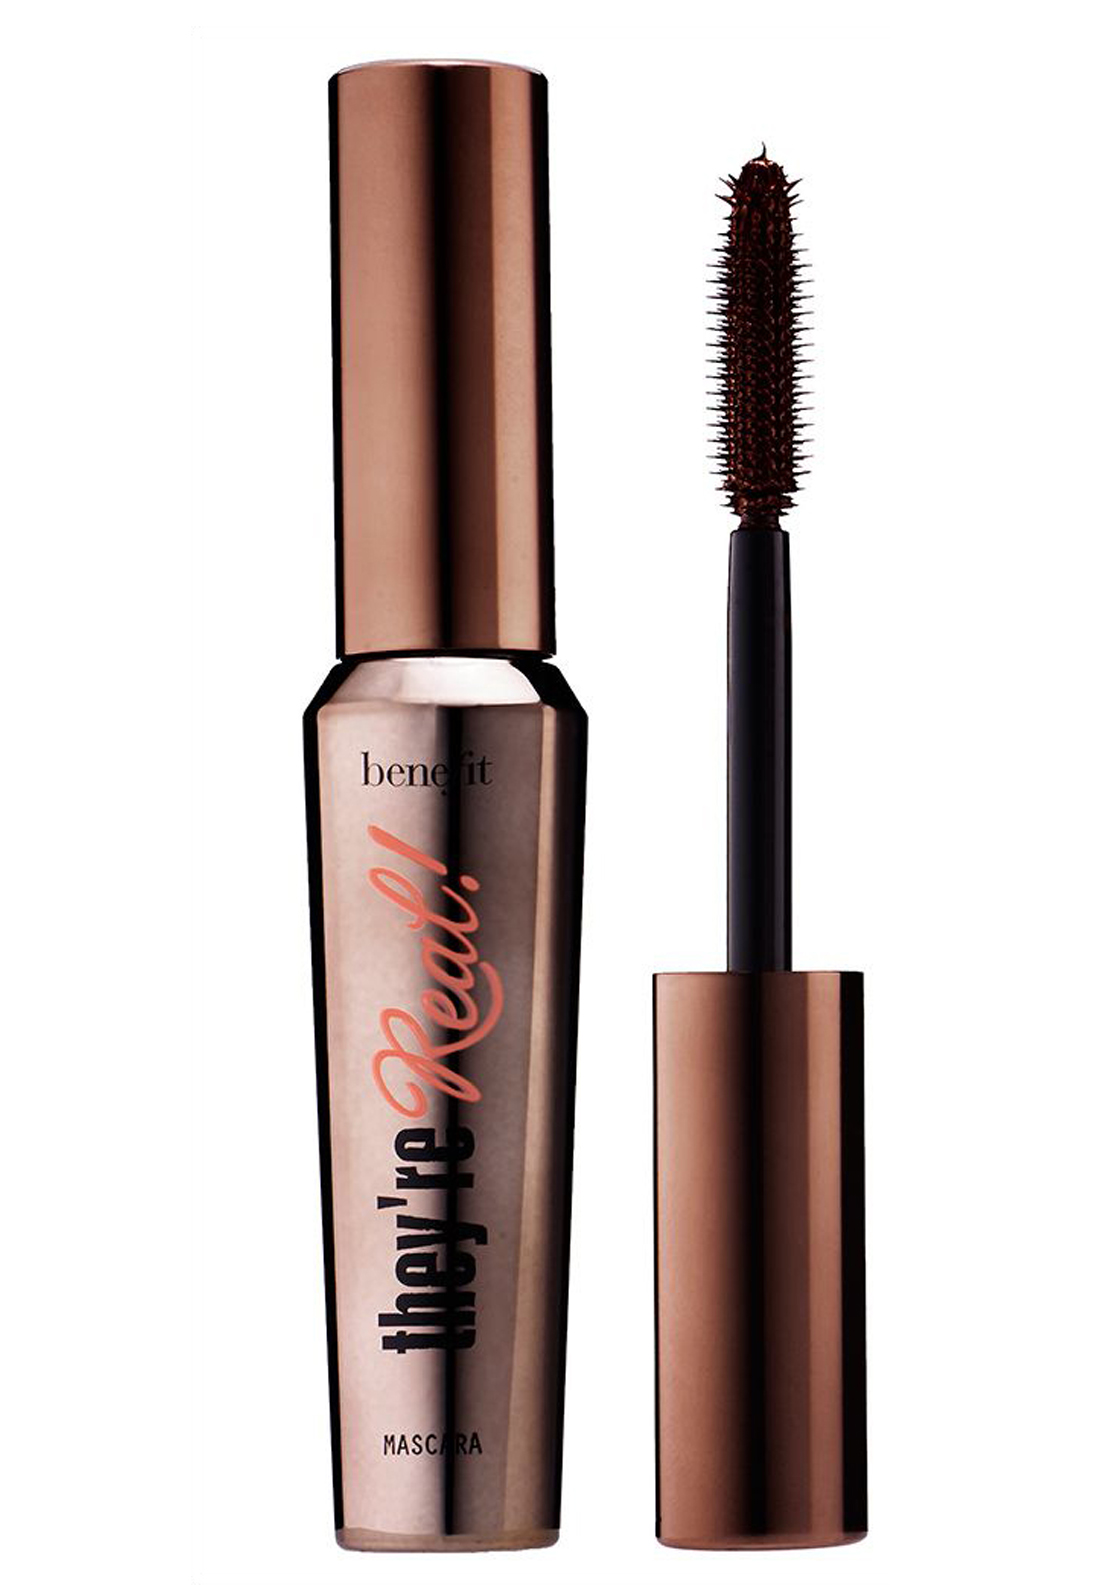 Benefit They're Real Beyond Mascara